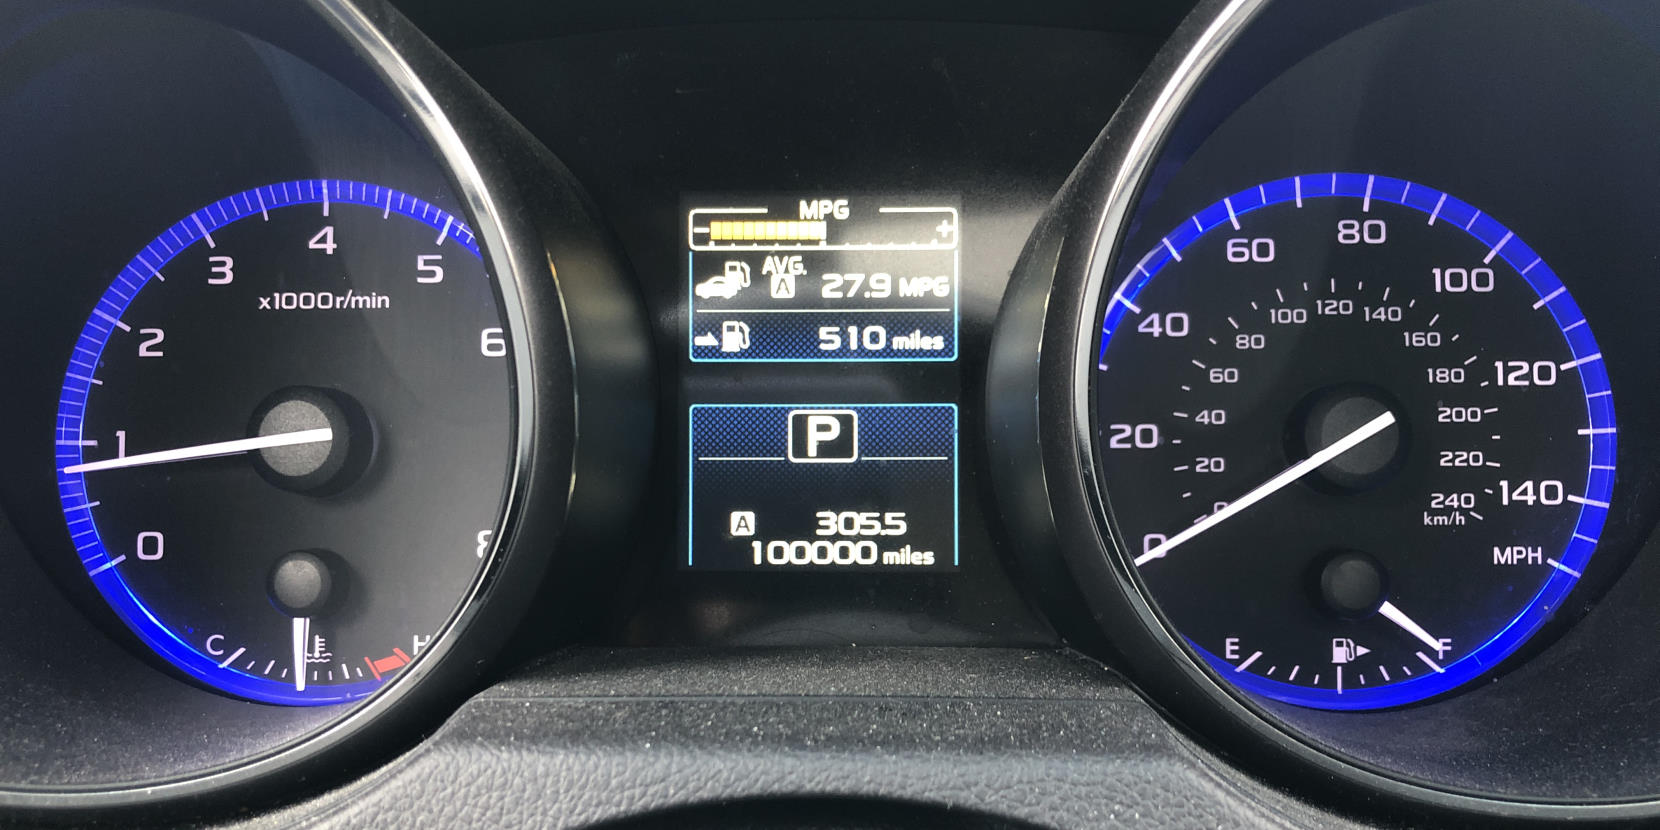 My odometer, showing 100000 miles.